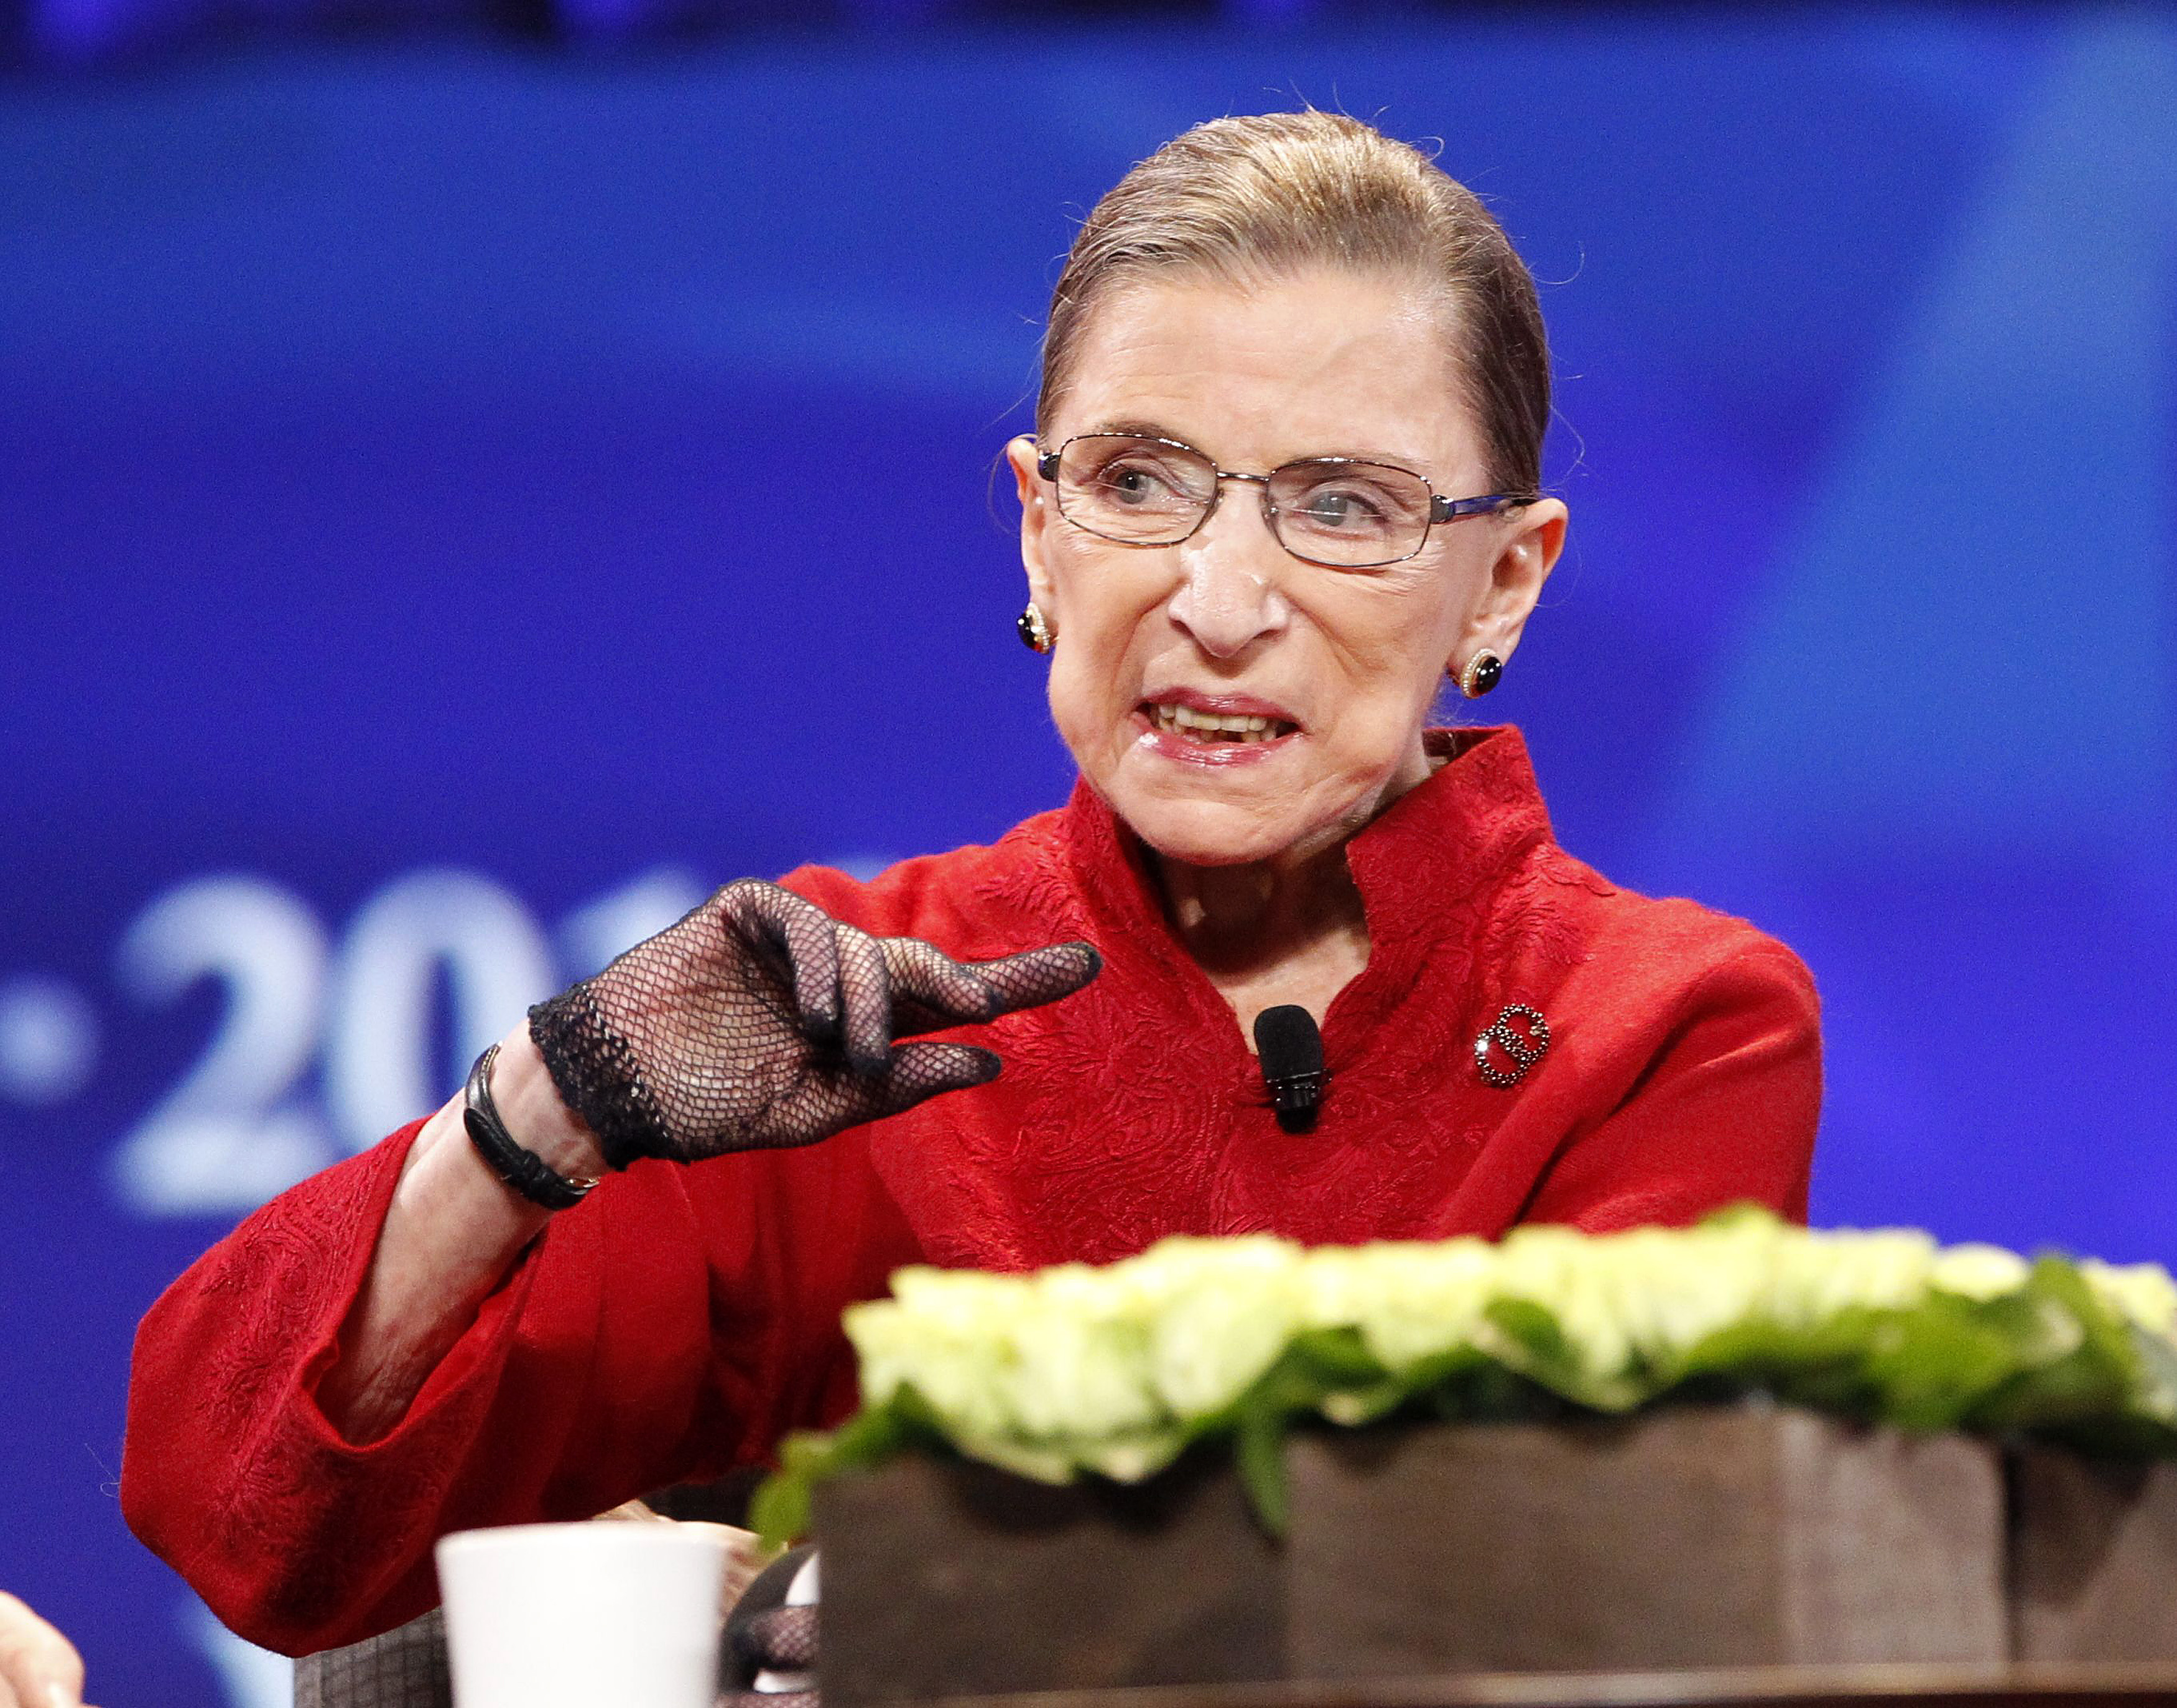 Justice Ruth Bader Ginsburg speaks during the lunch session of